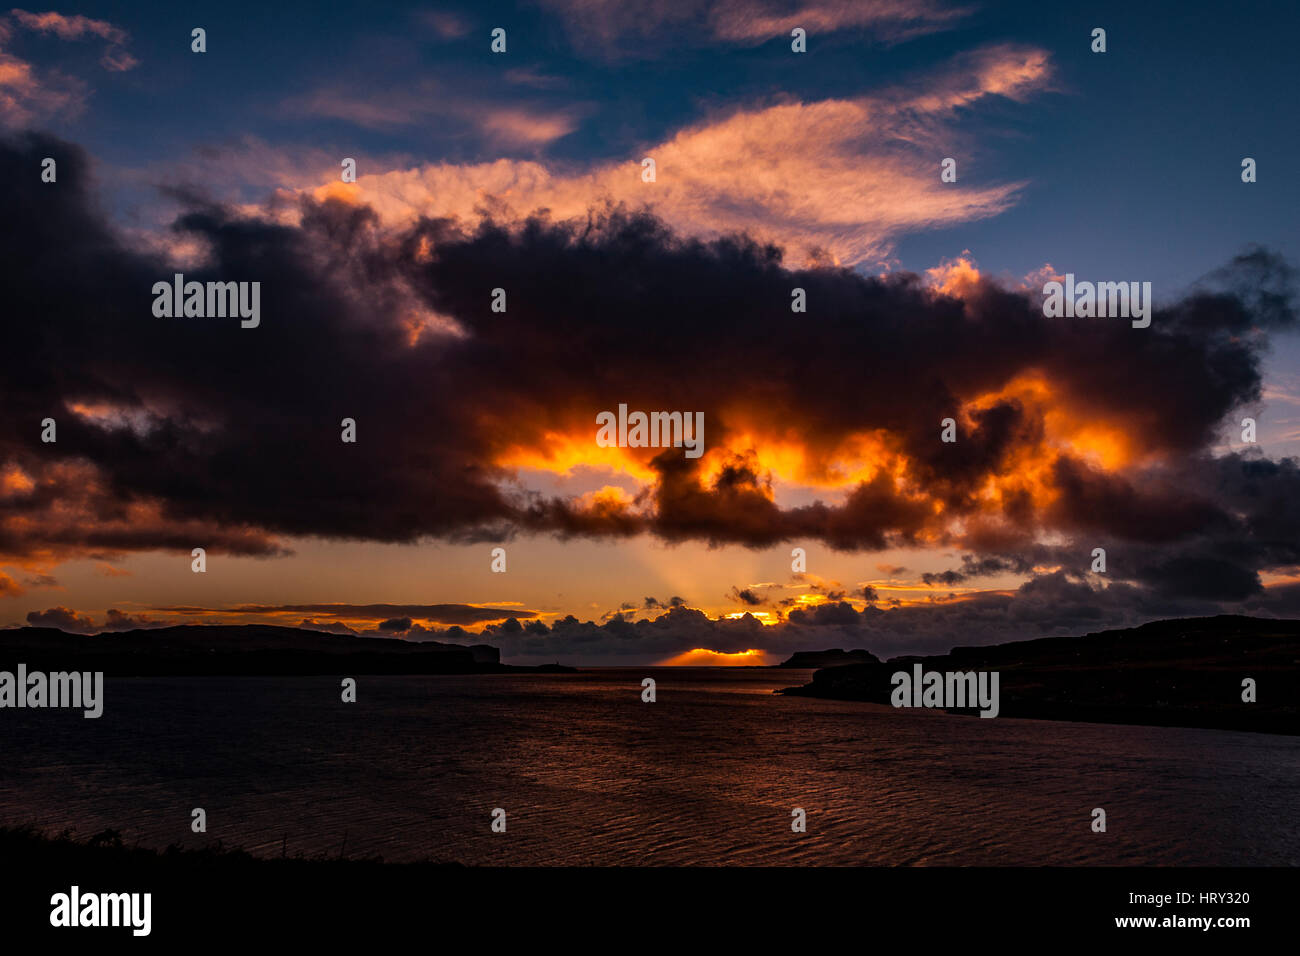 Sunset with crepuscular light across Loch Beag, Isle of Skye, looking out to Ullinish Point, Bracdale Point, Ardtreck Point and Isle Oronsay Stock Photo